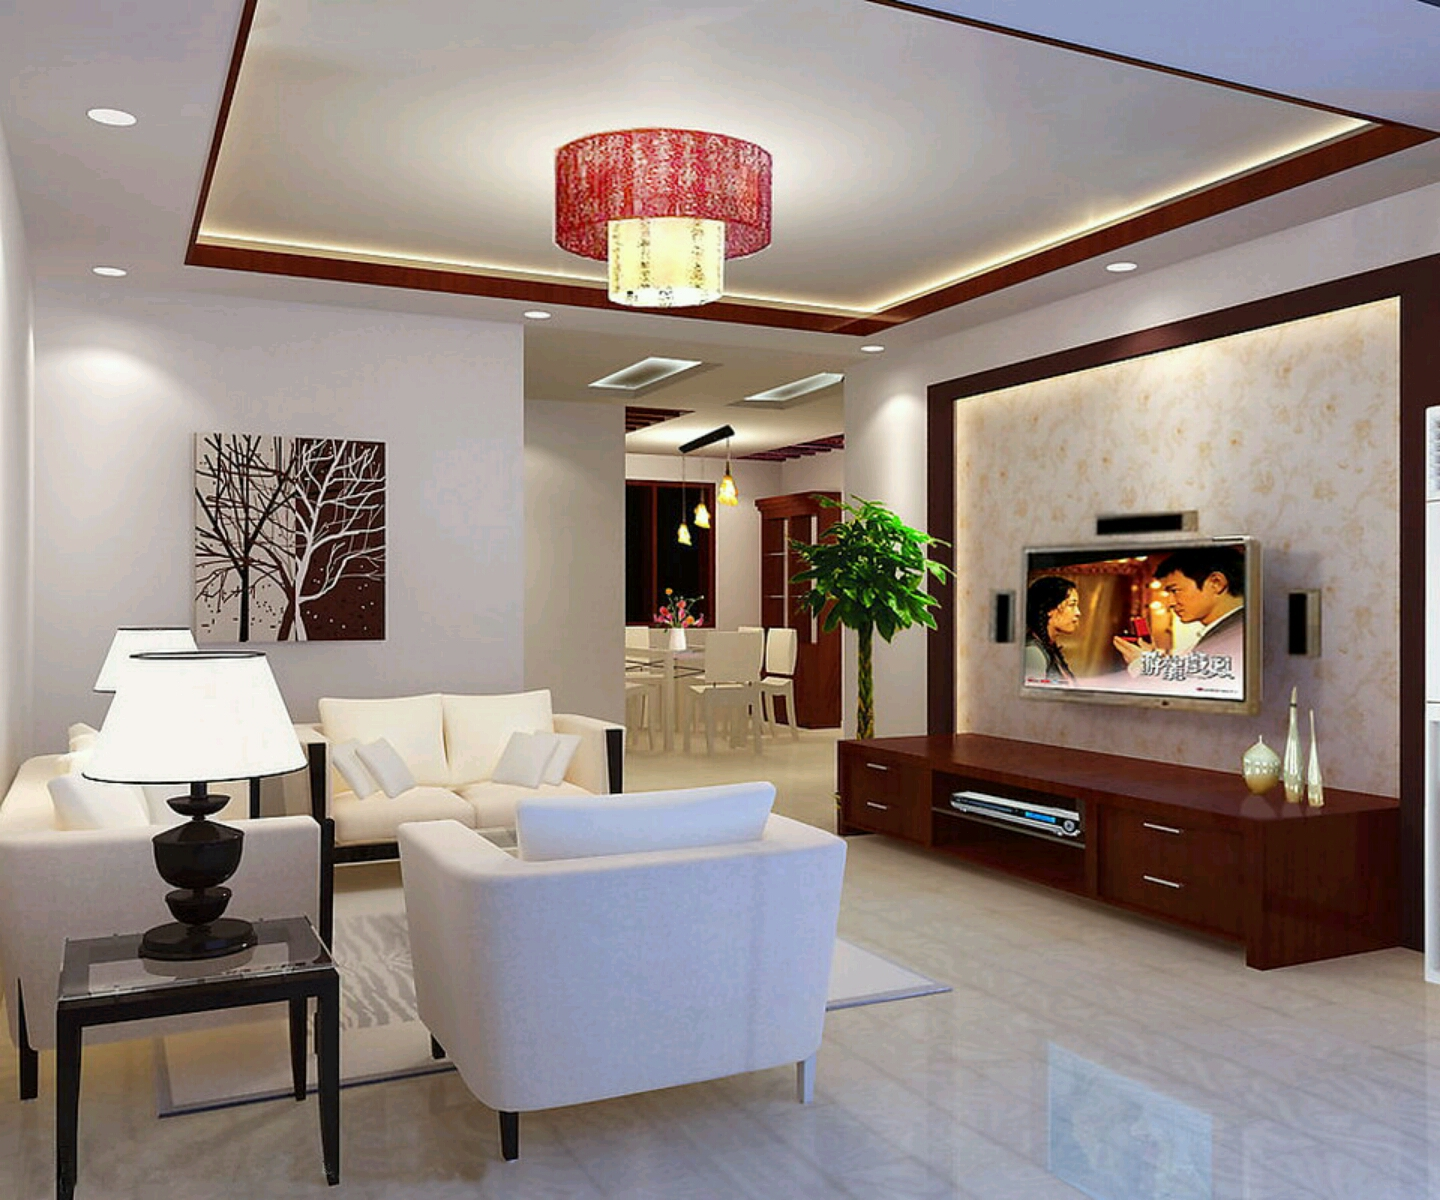 New home designs latest modern interior decoration for Home decor ideas living room modern